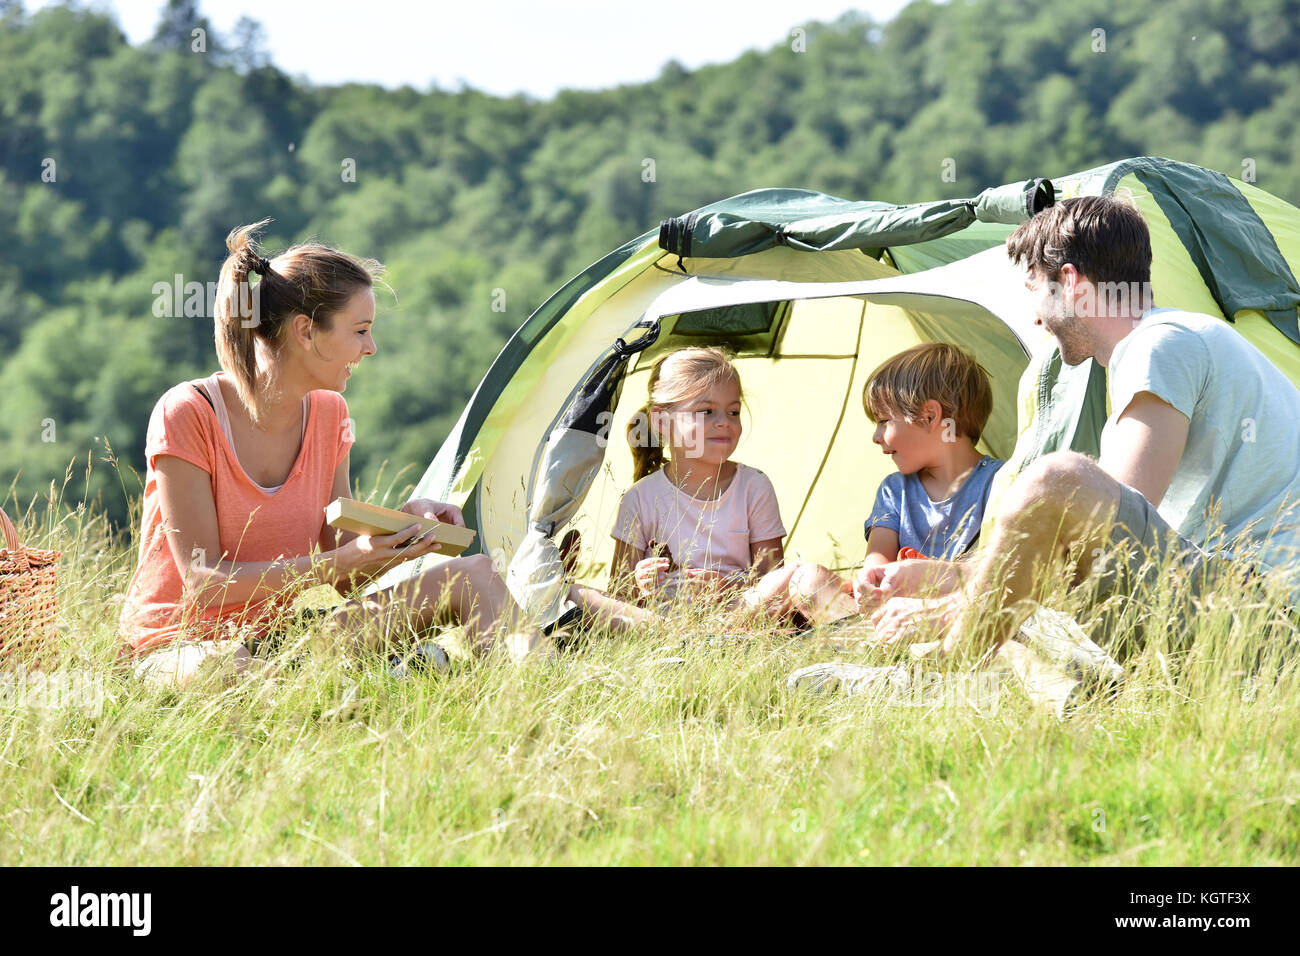 Famille de quatre personnes au camp tente Photo Stock